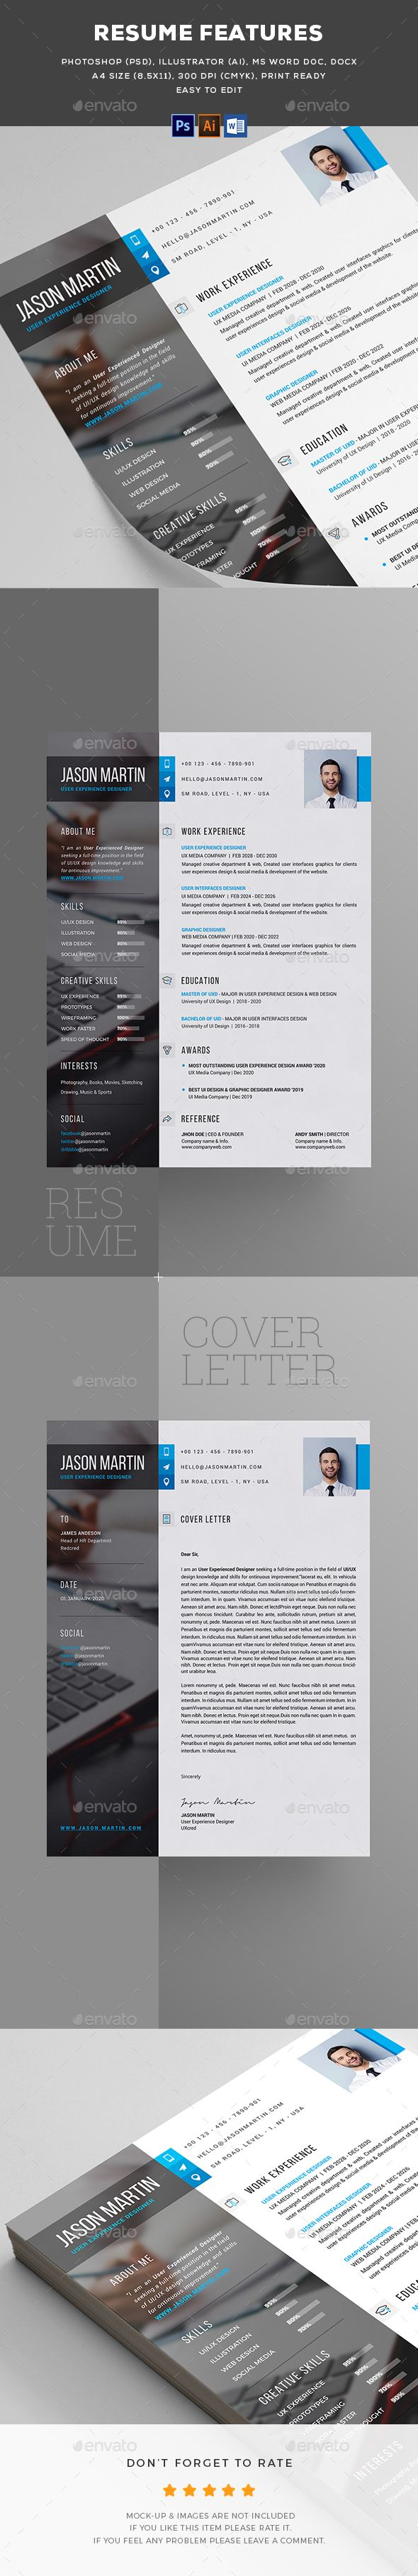 103 best CV images on Pinterest | Cv template, Resume templates and ...